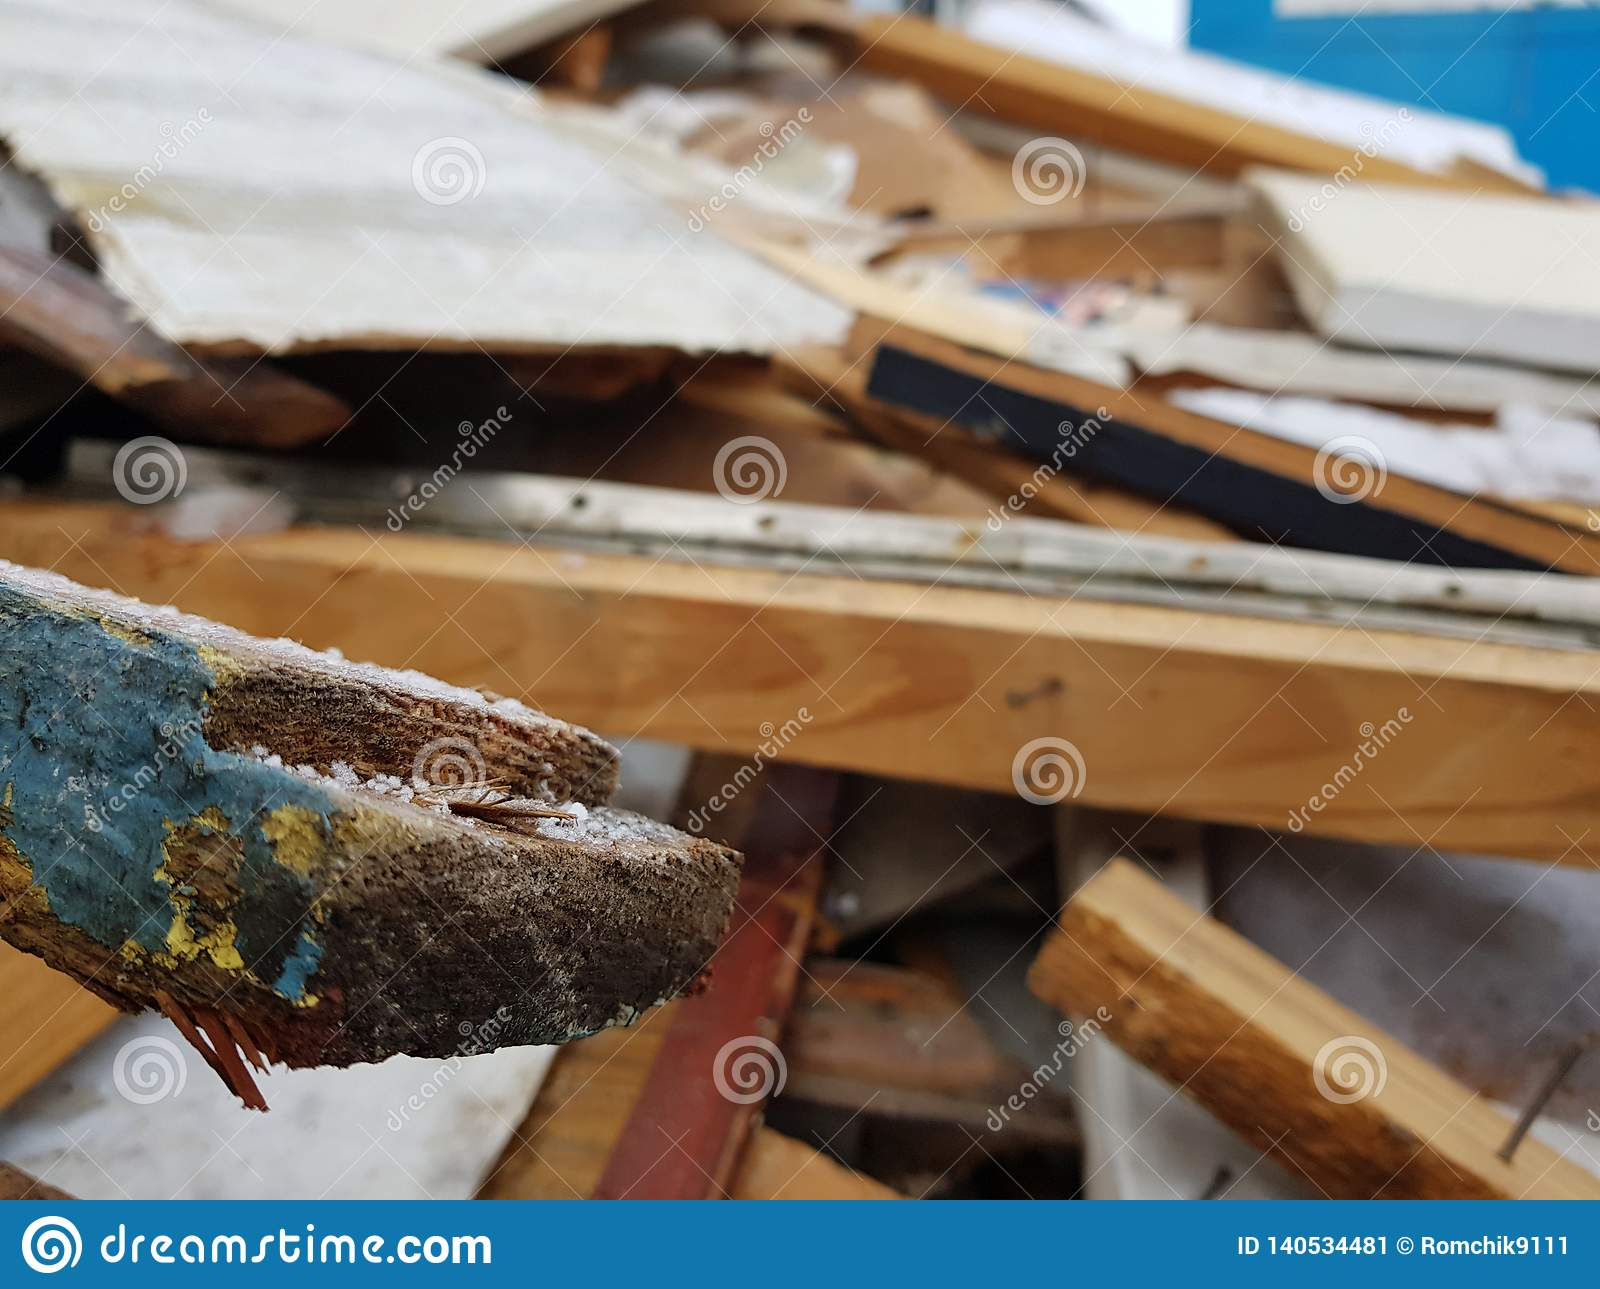 Old boards, repair and construction waste